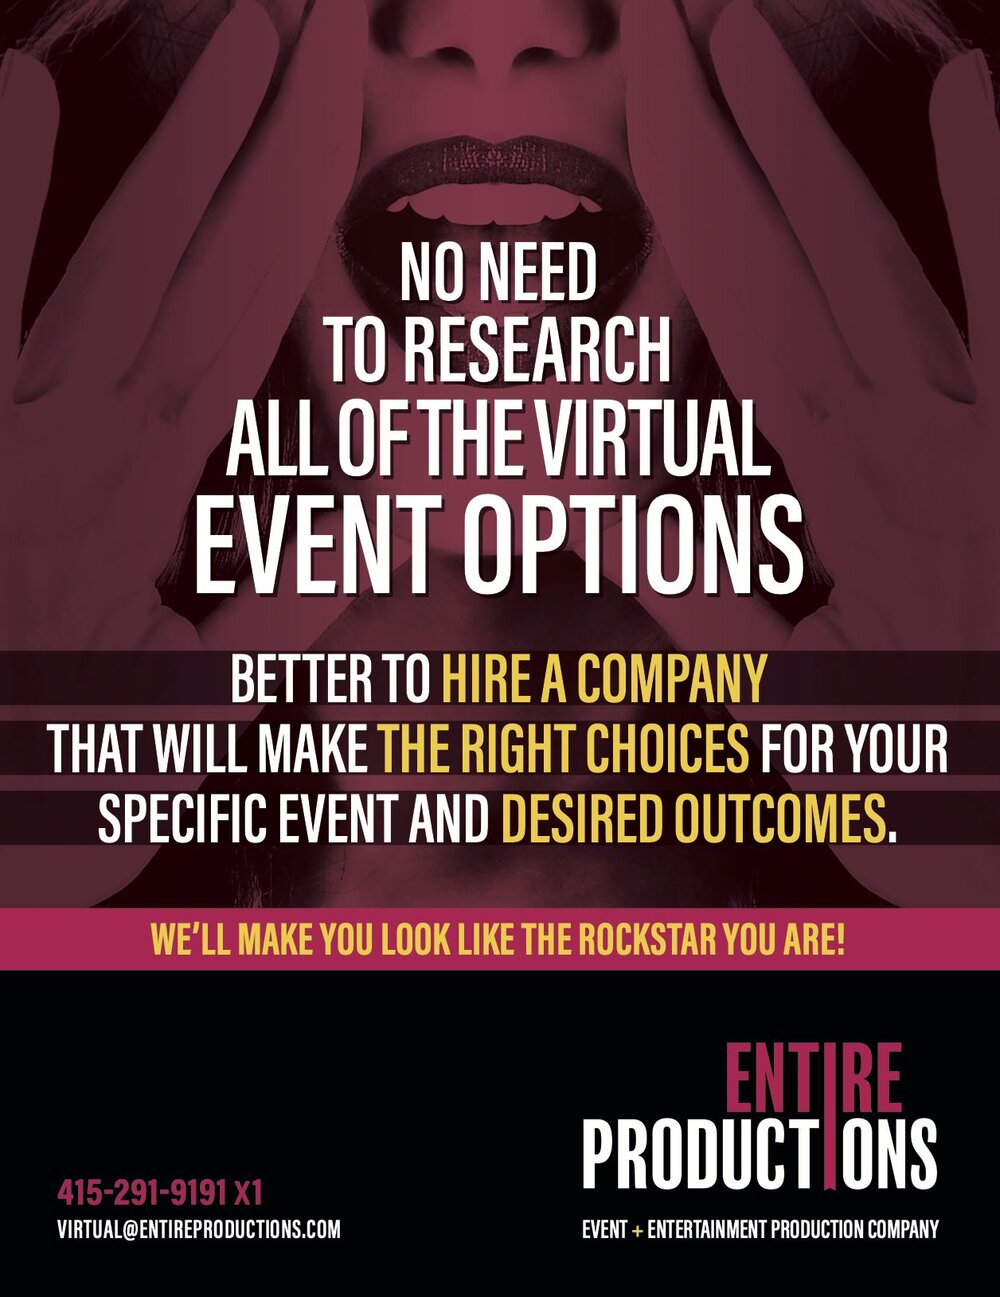 Hire the right virtual event entertainment, planning, and management company that will make you look like a rockstar!